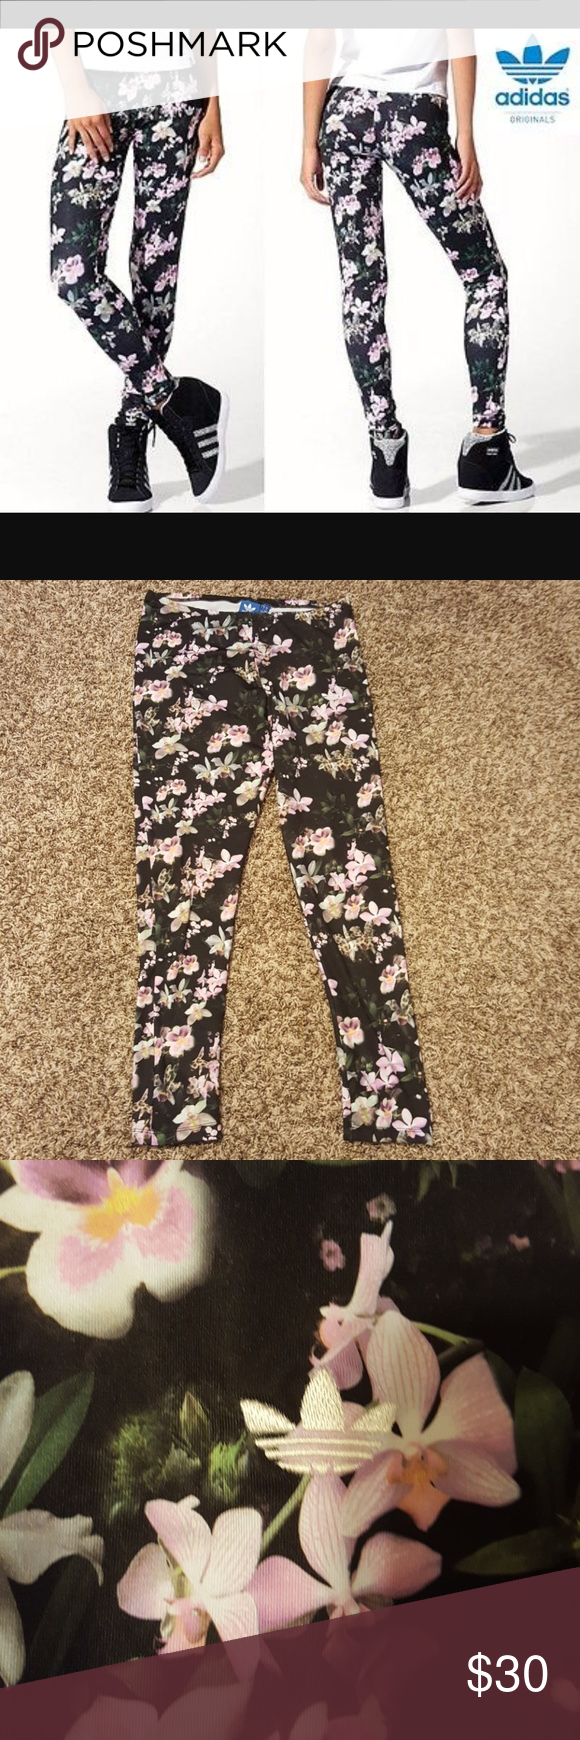 bf71a7d2ebd0b Adidas Originals Orchid flower print leggings Cute Adidas Originals leggings.  Excellent condition size medium. adidas Pants Leggings